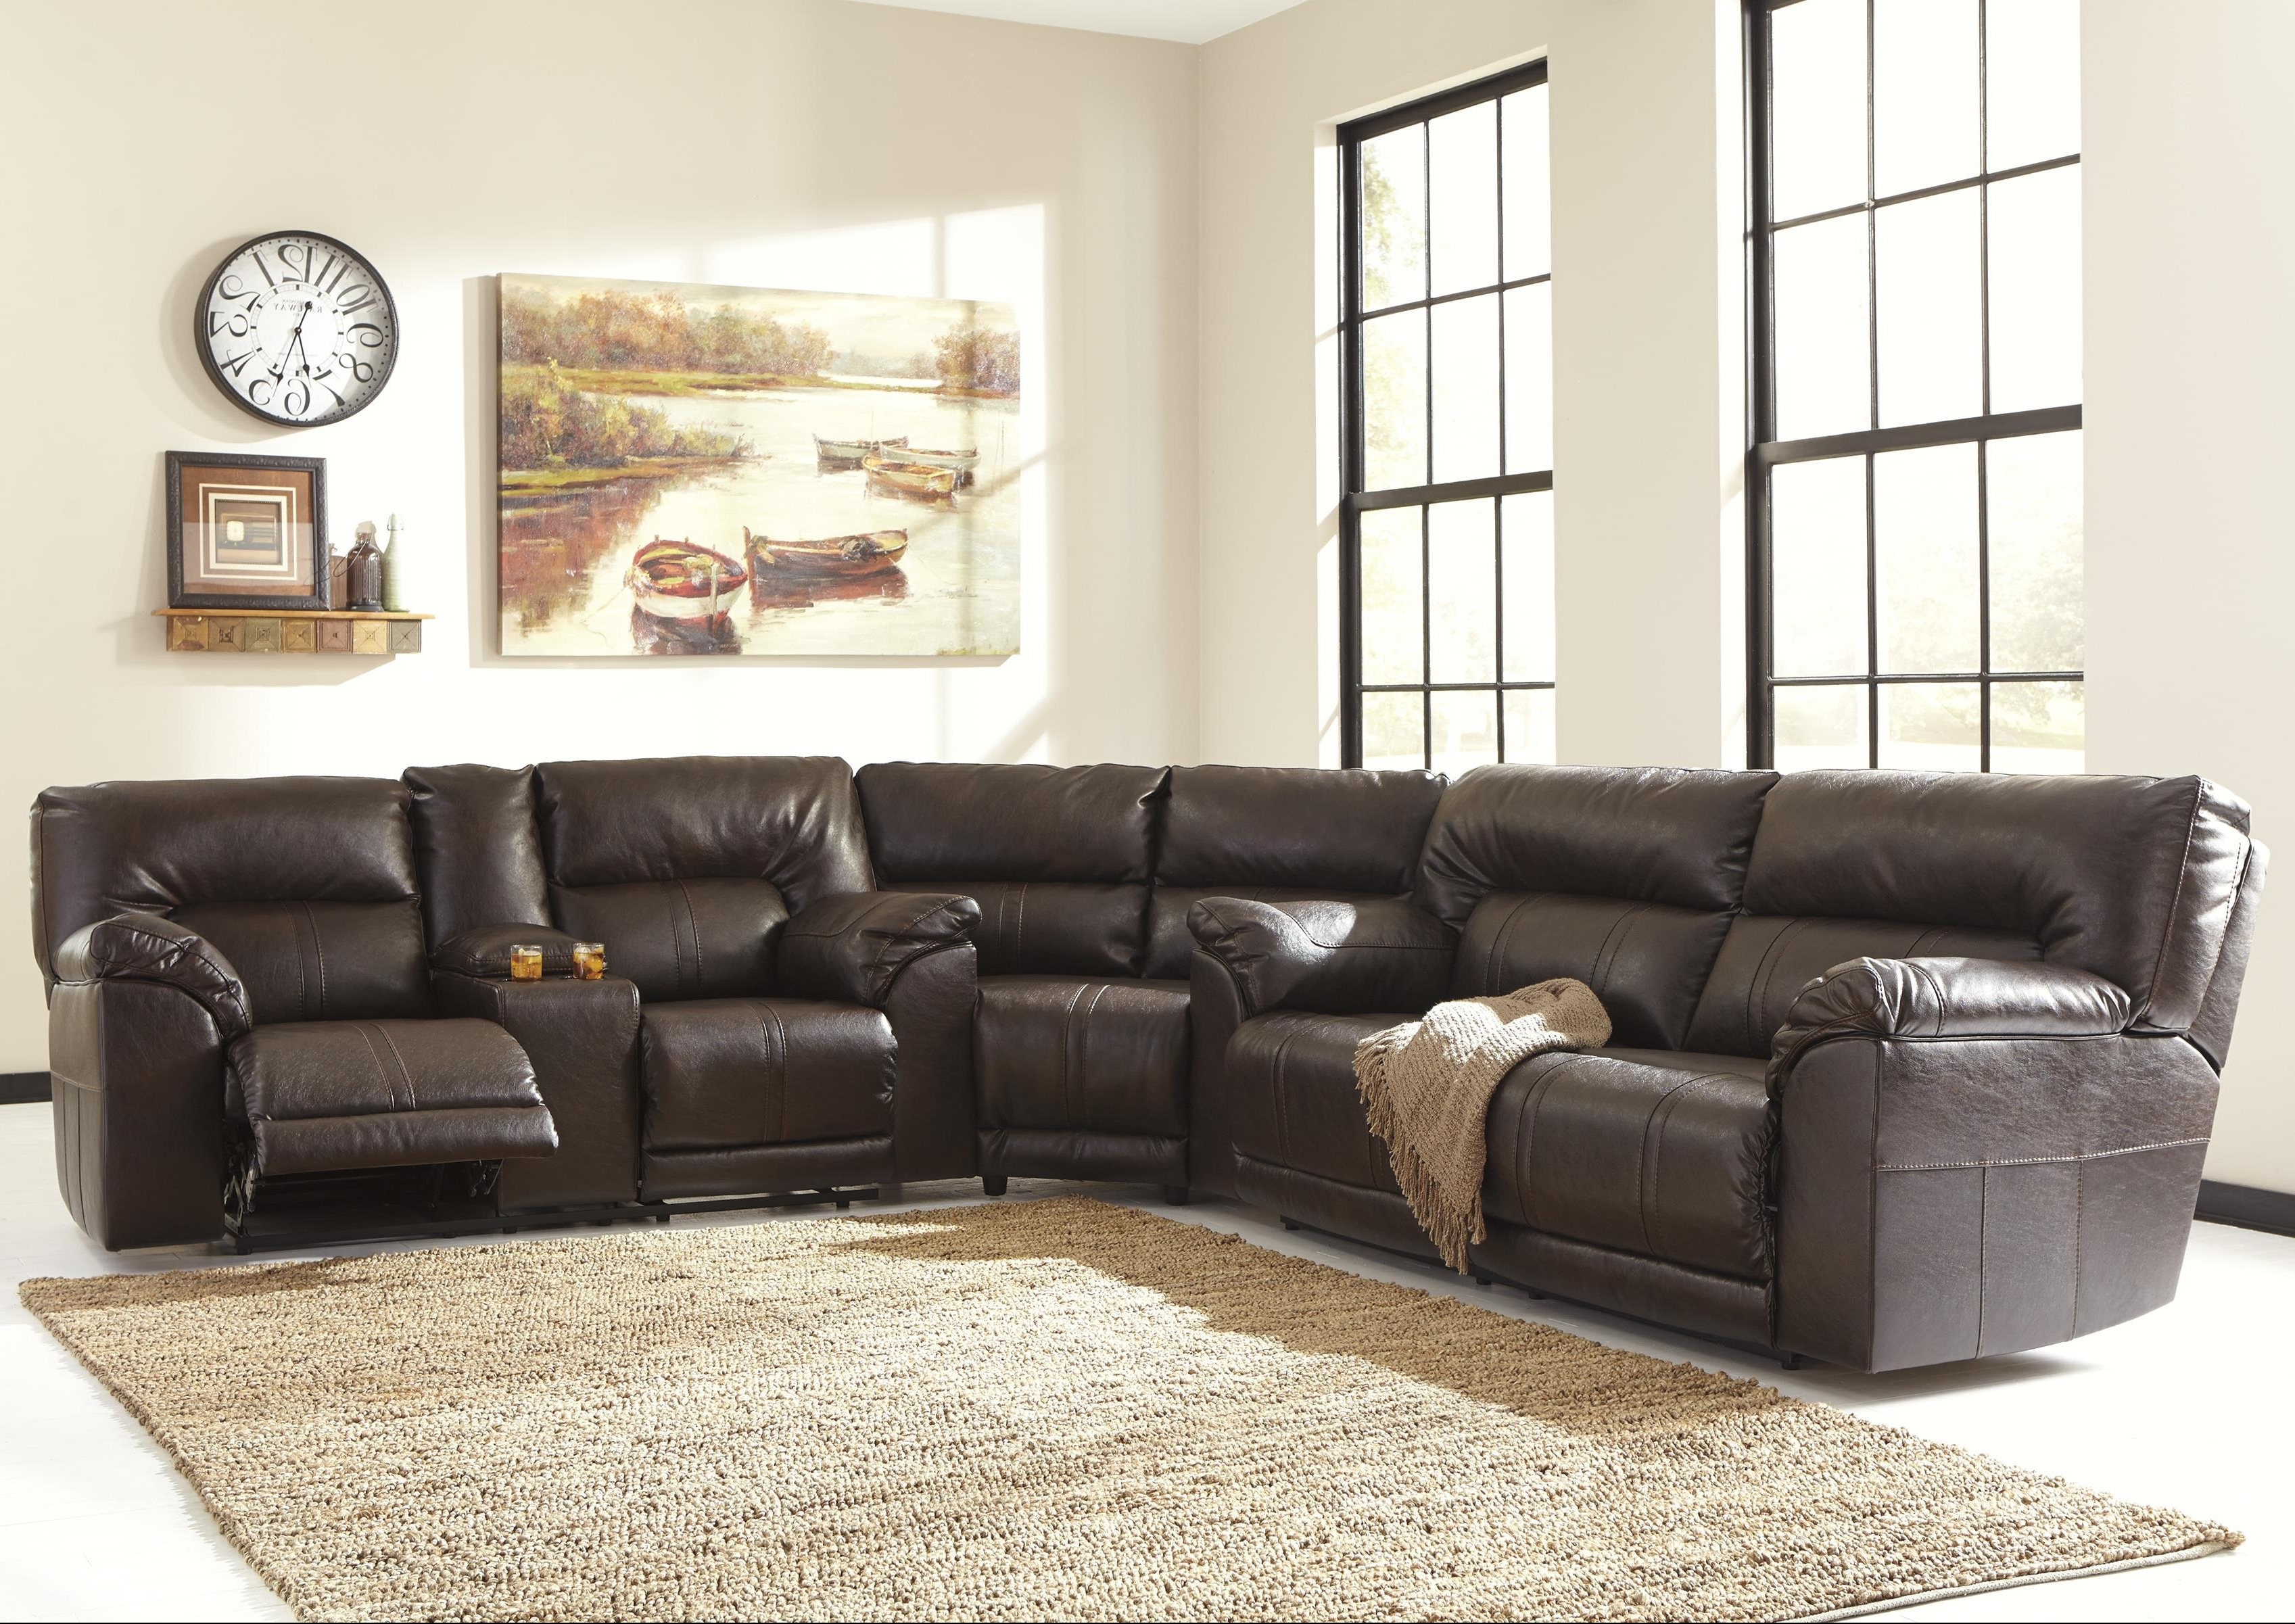 Widely Used Benchcraftashley Barrettsville Durablend® 3 Piece Reclining With Regard To Sectional Sofas At Birmingham Al (View 15 of 15)